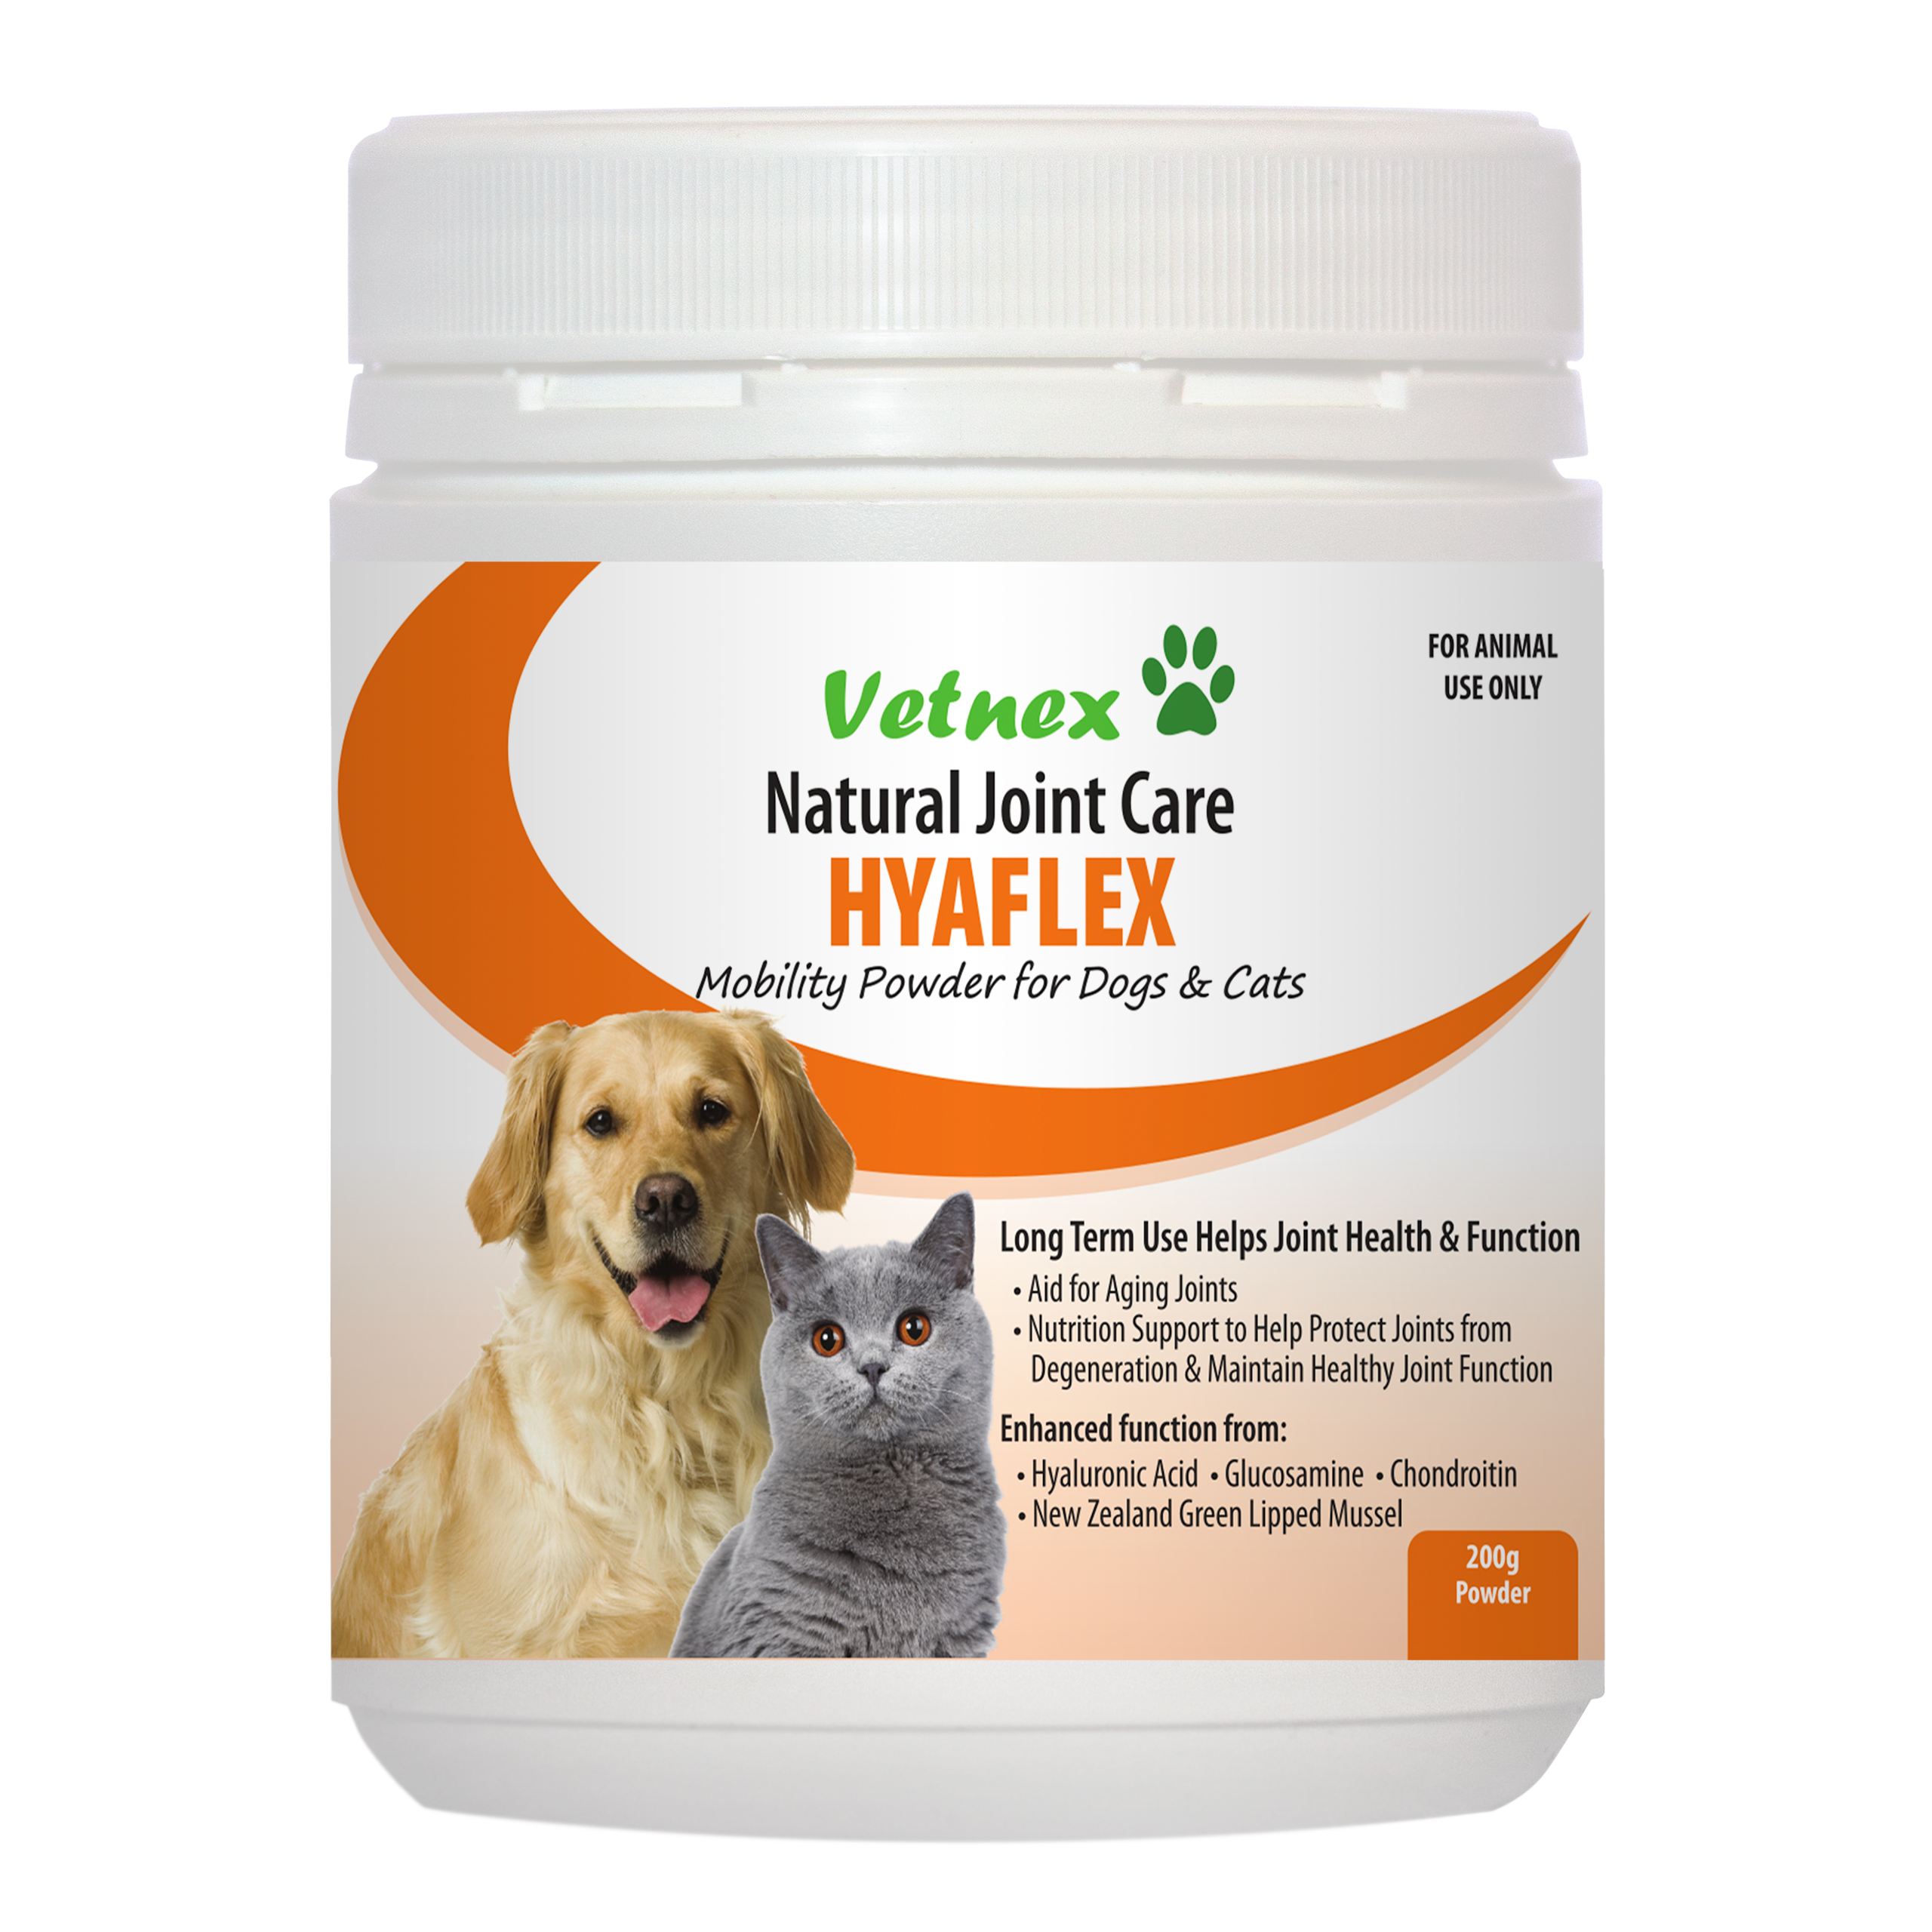 Hyaflex Mobility Powder, a New Addition to Vetnex Natural Bone & Joint Care Range